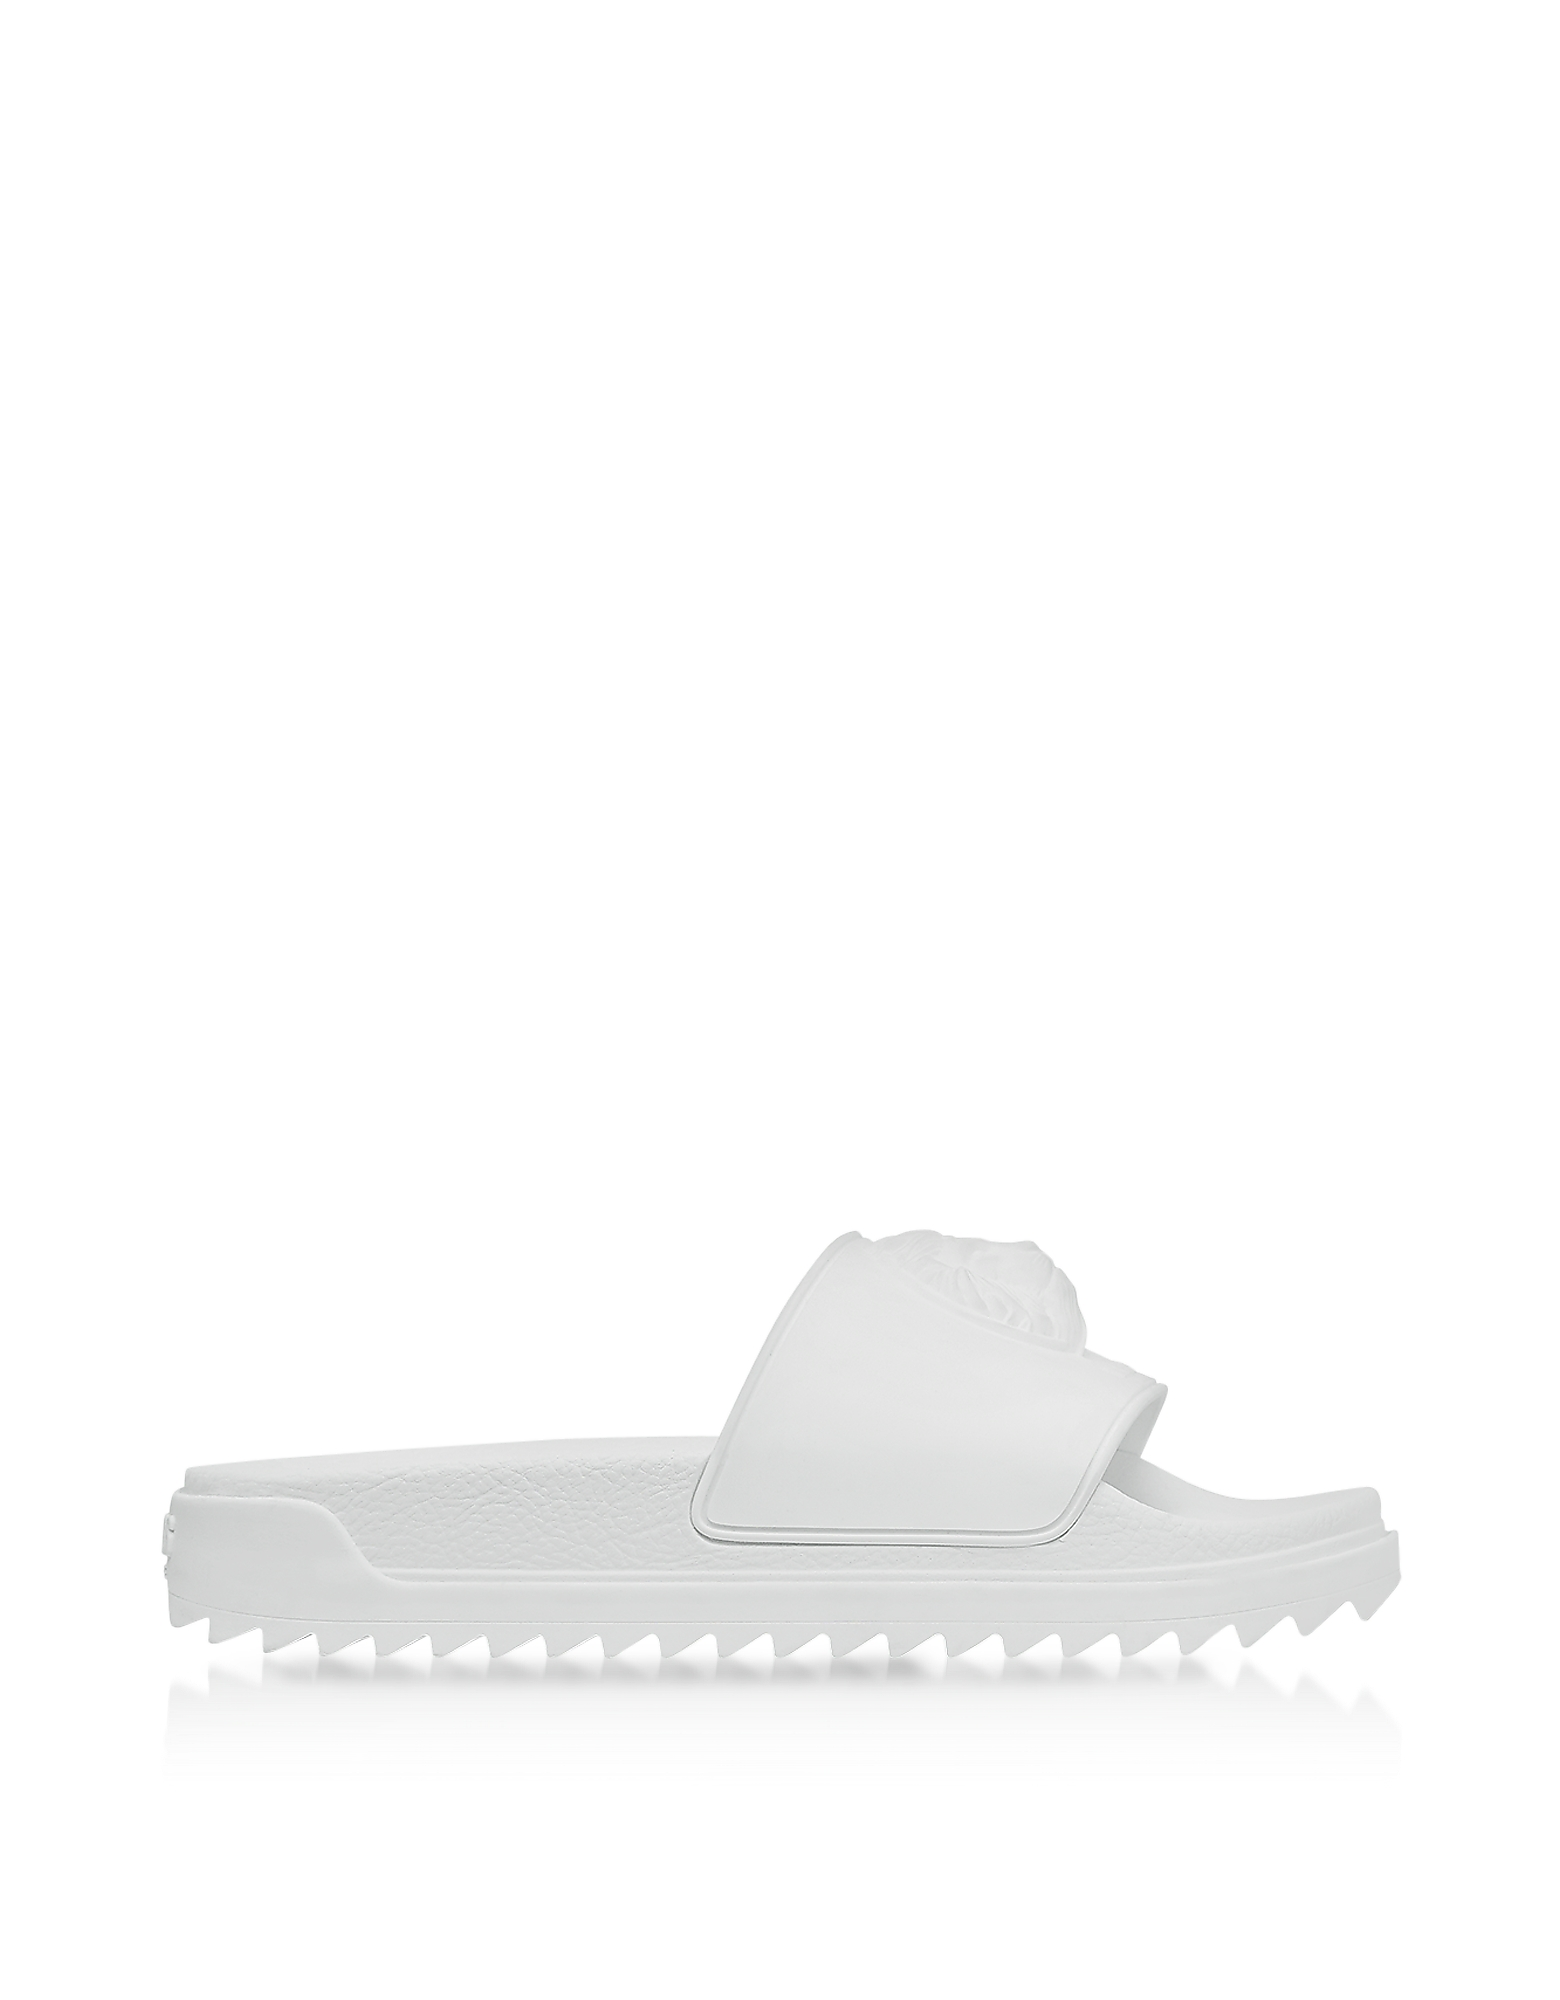 Versace Versus Shoes, Lion Head Pure White Rubber Slide Sandals